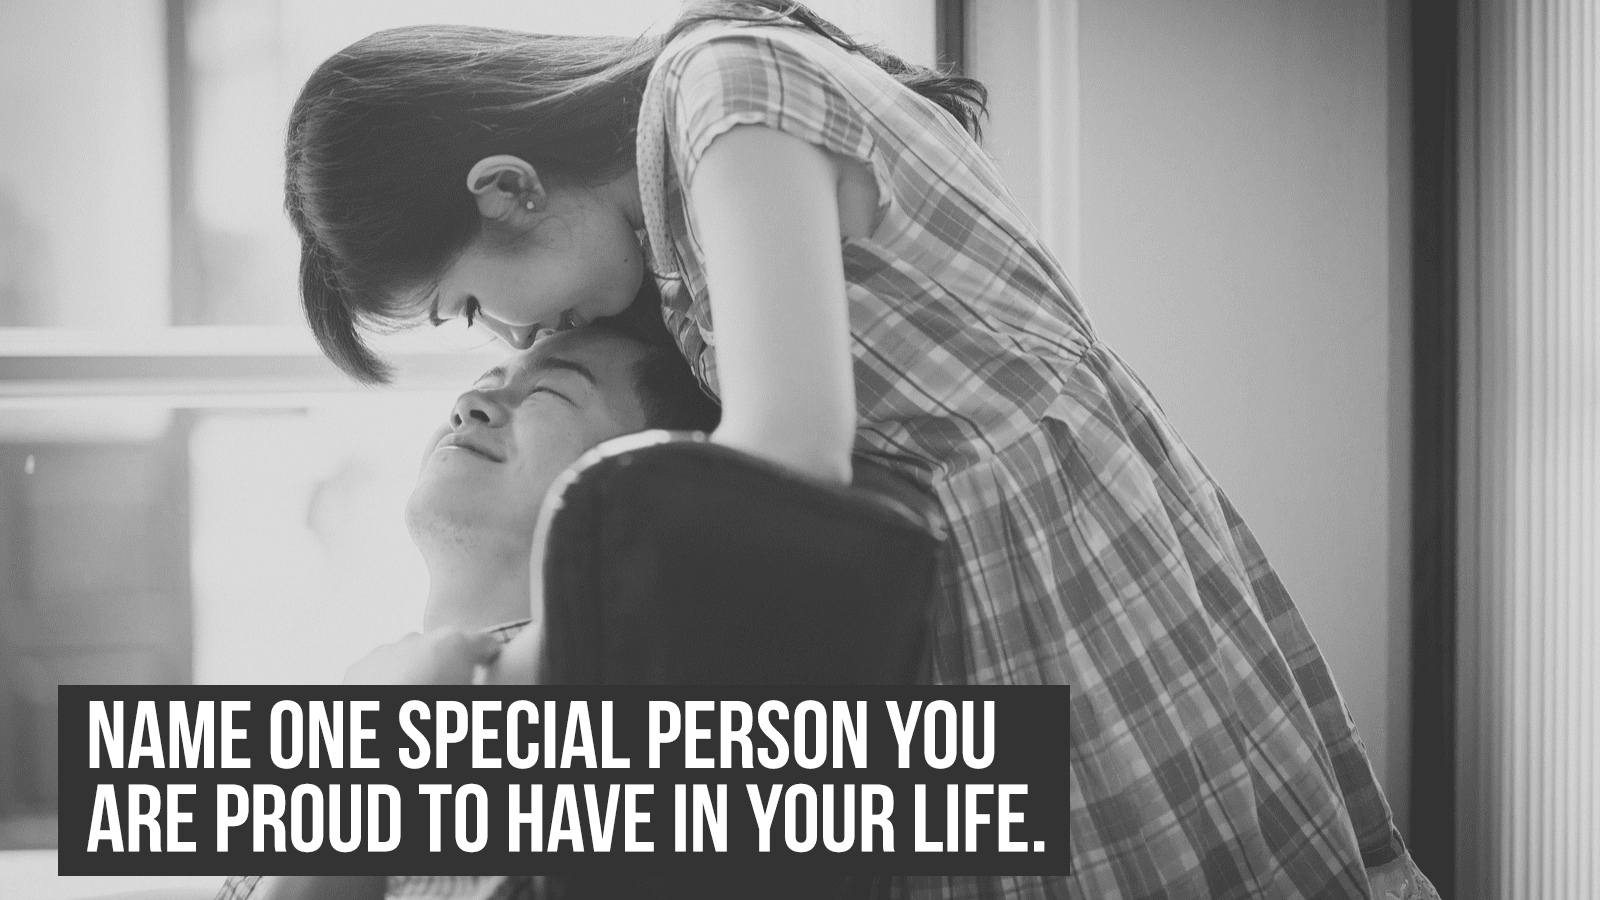 My Special Person